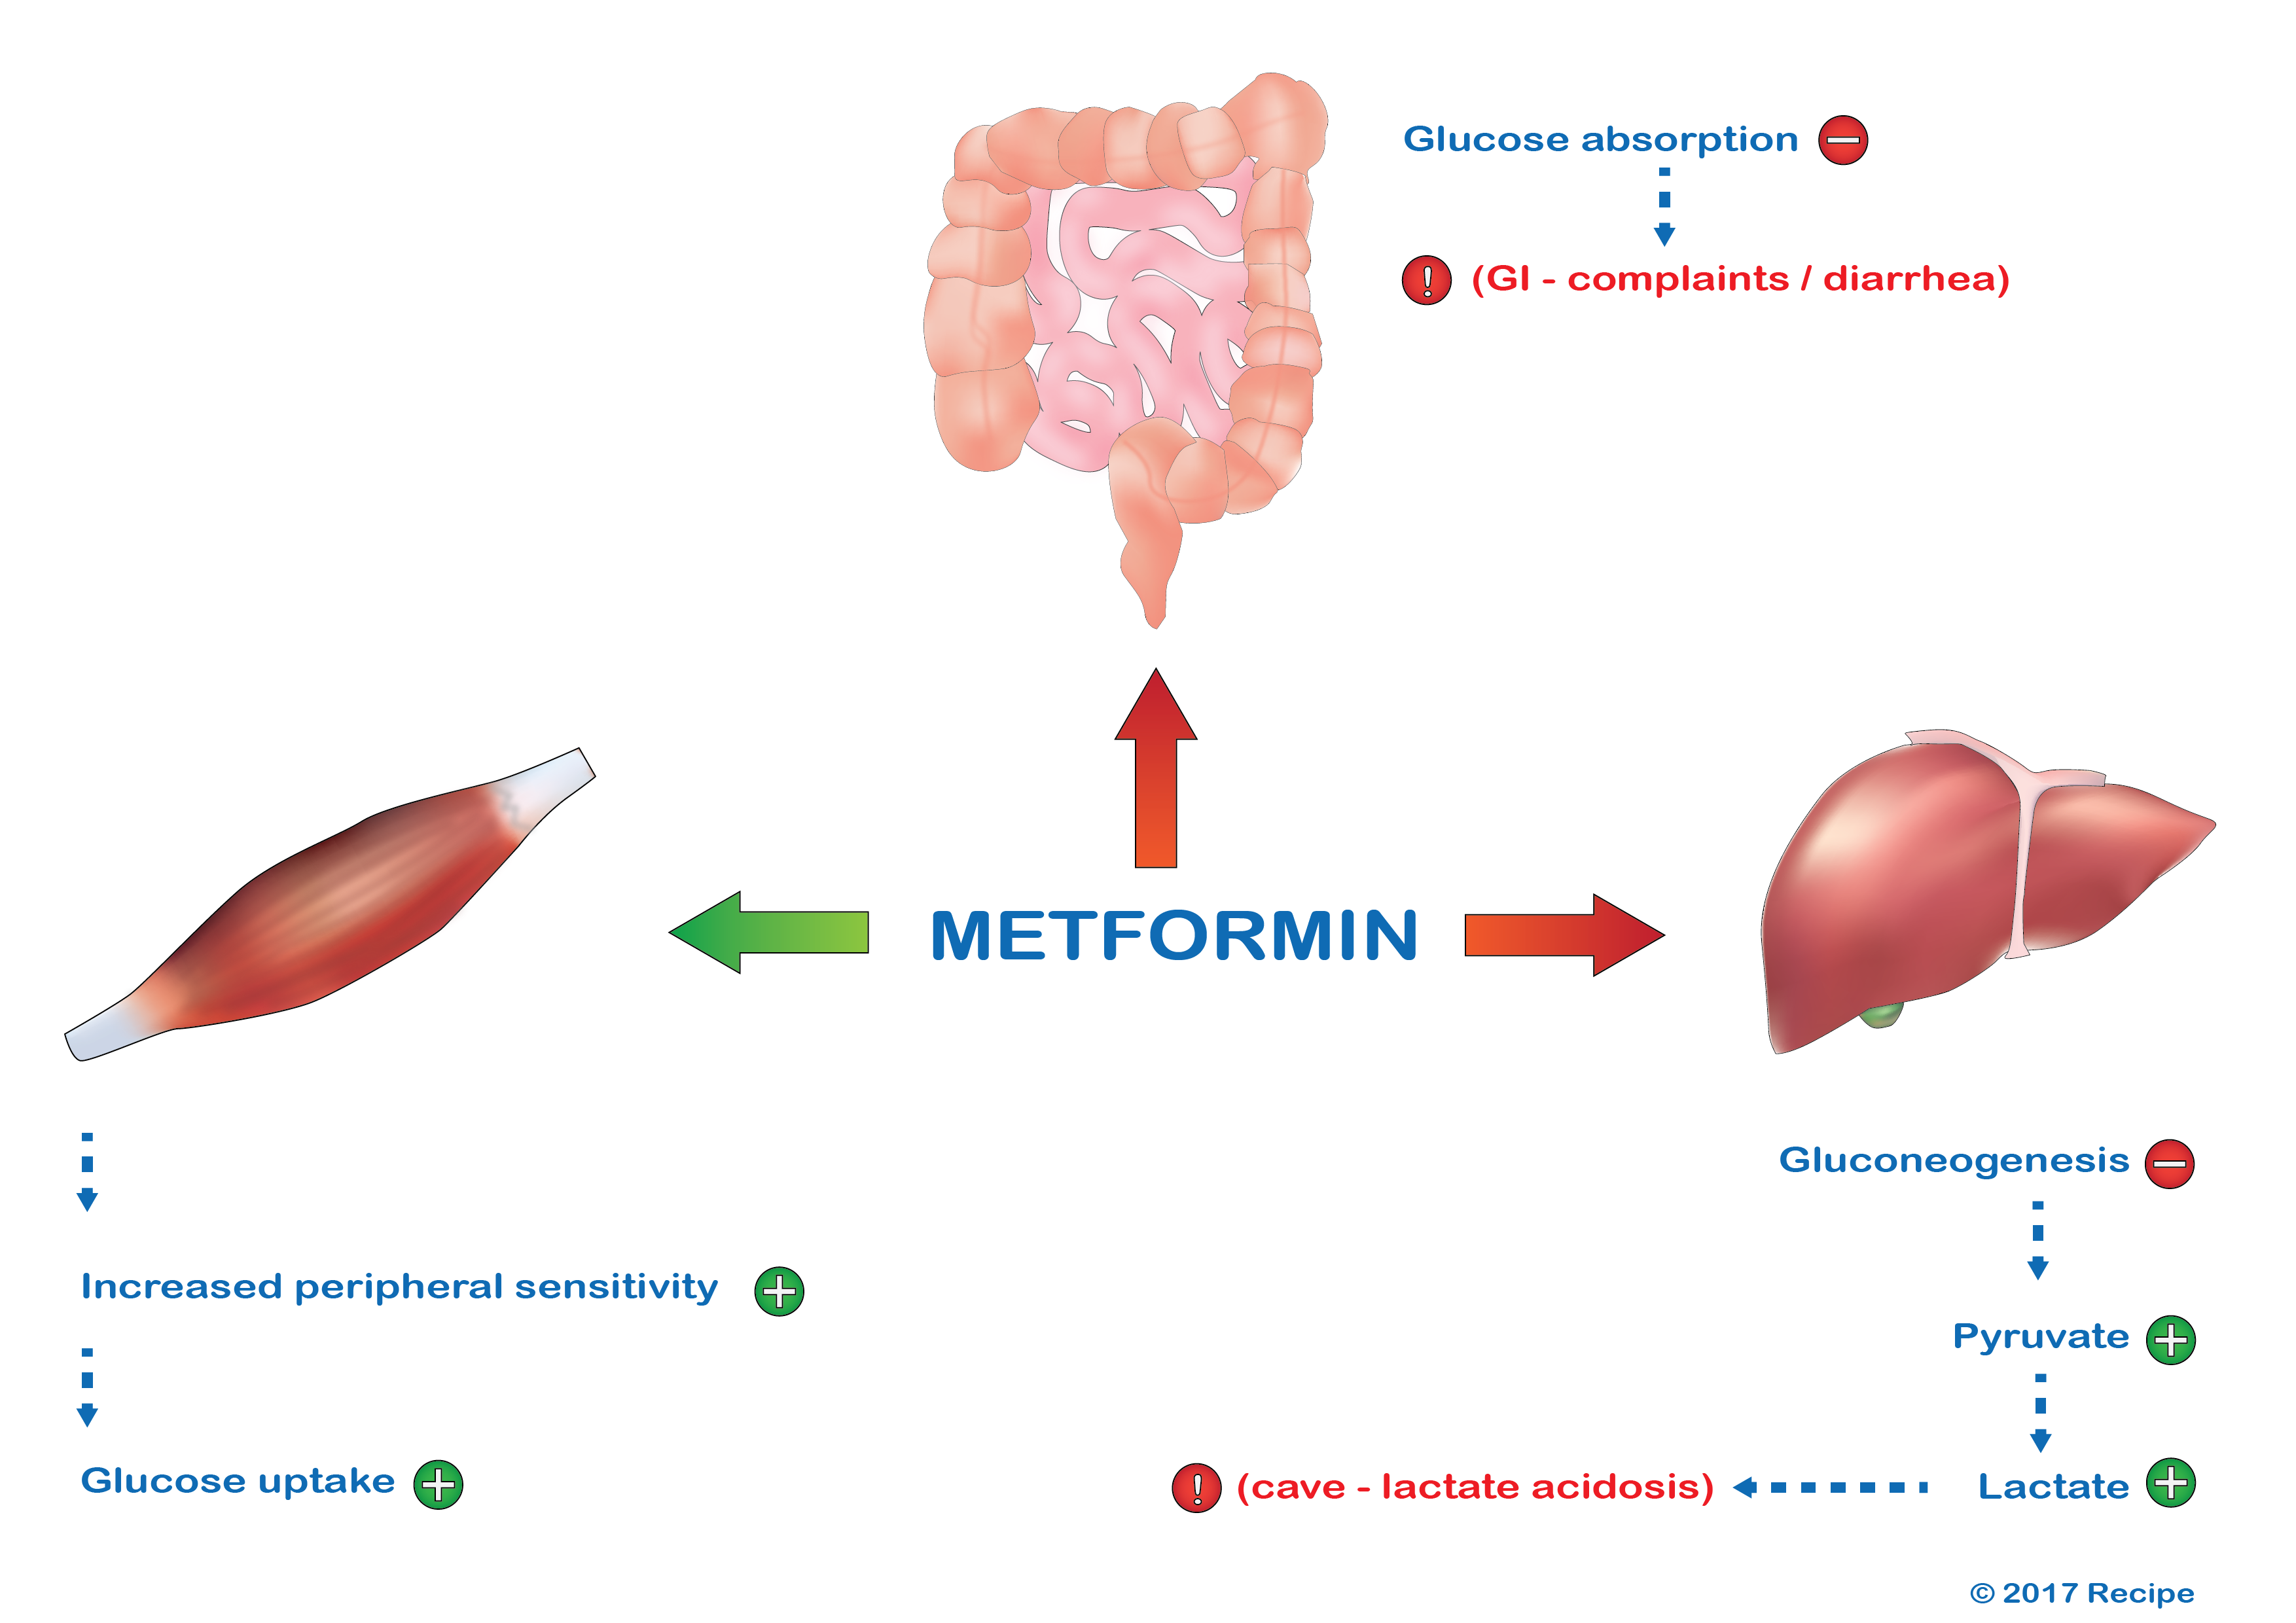 The working mechanism of metformin